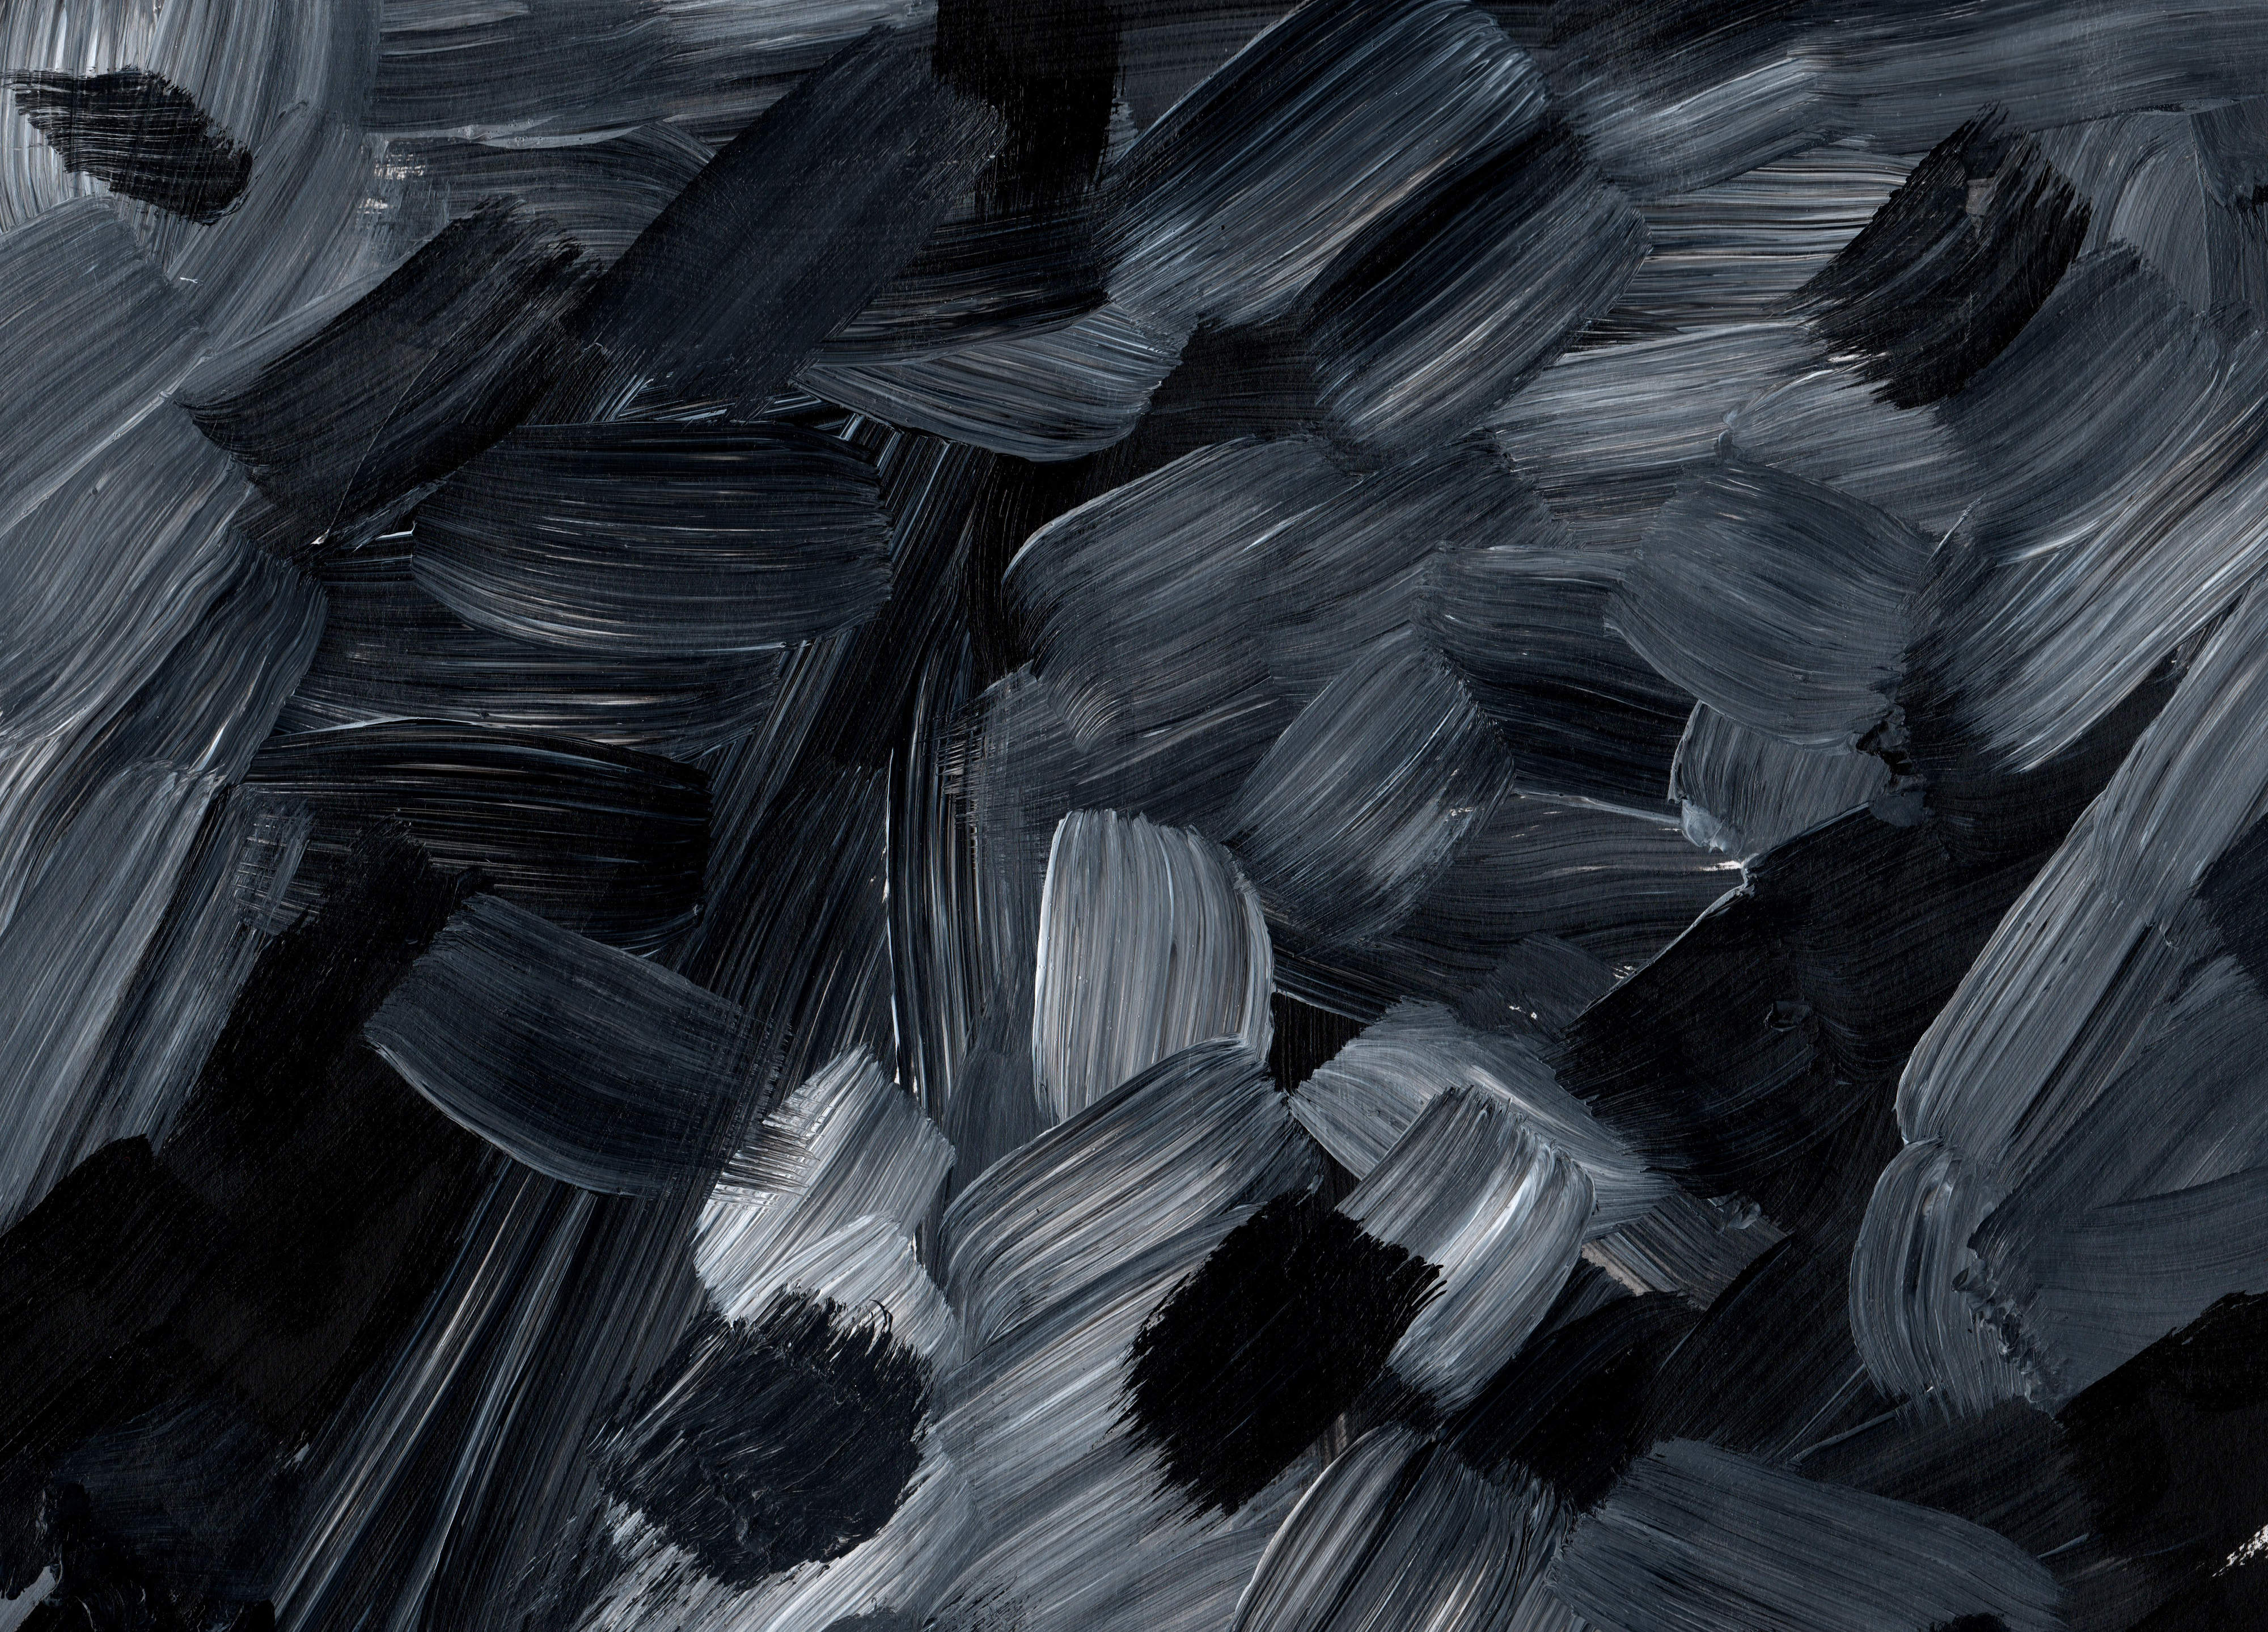 4 Paint Texture Black And White Texture Jpg Onlygfx Com